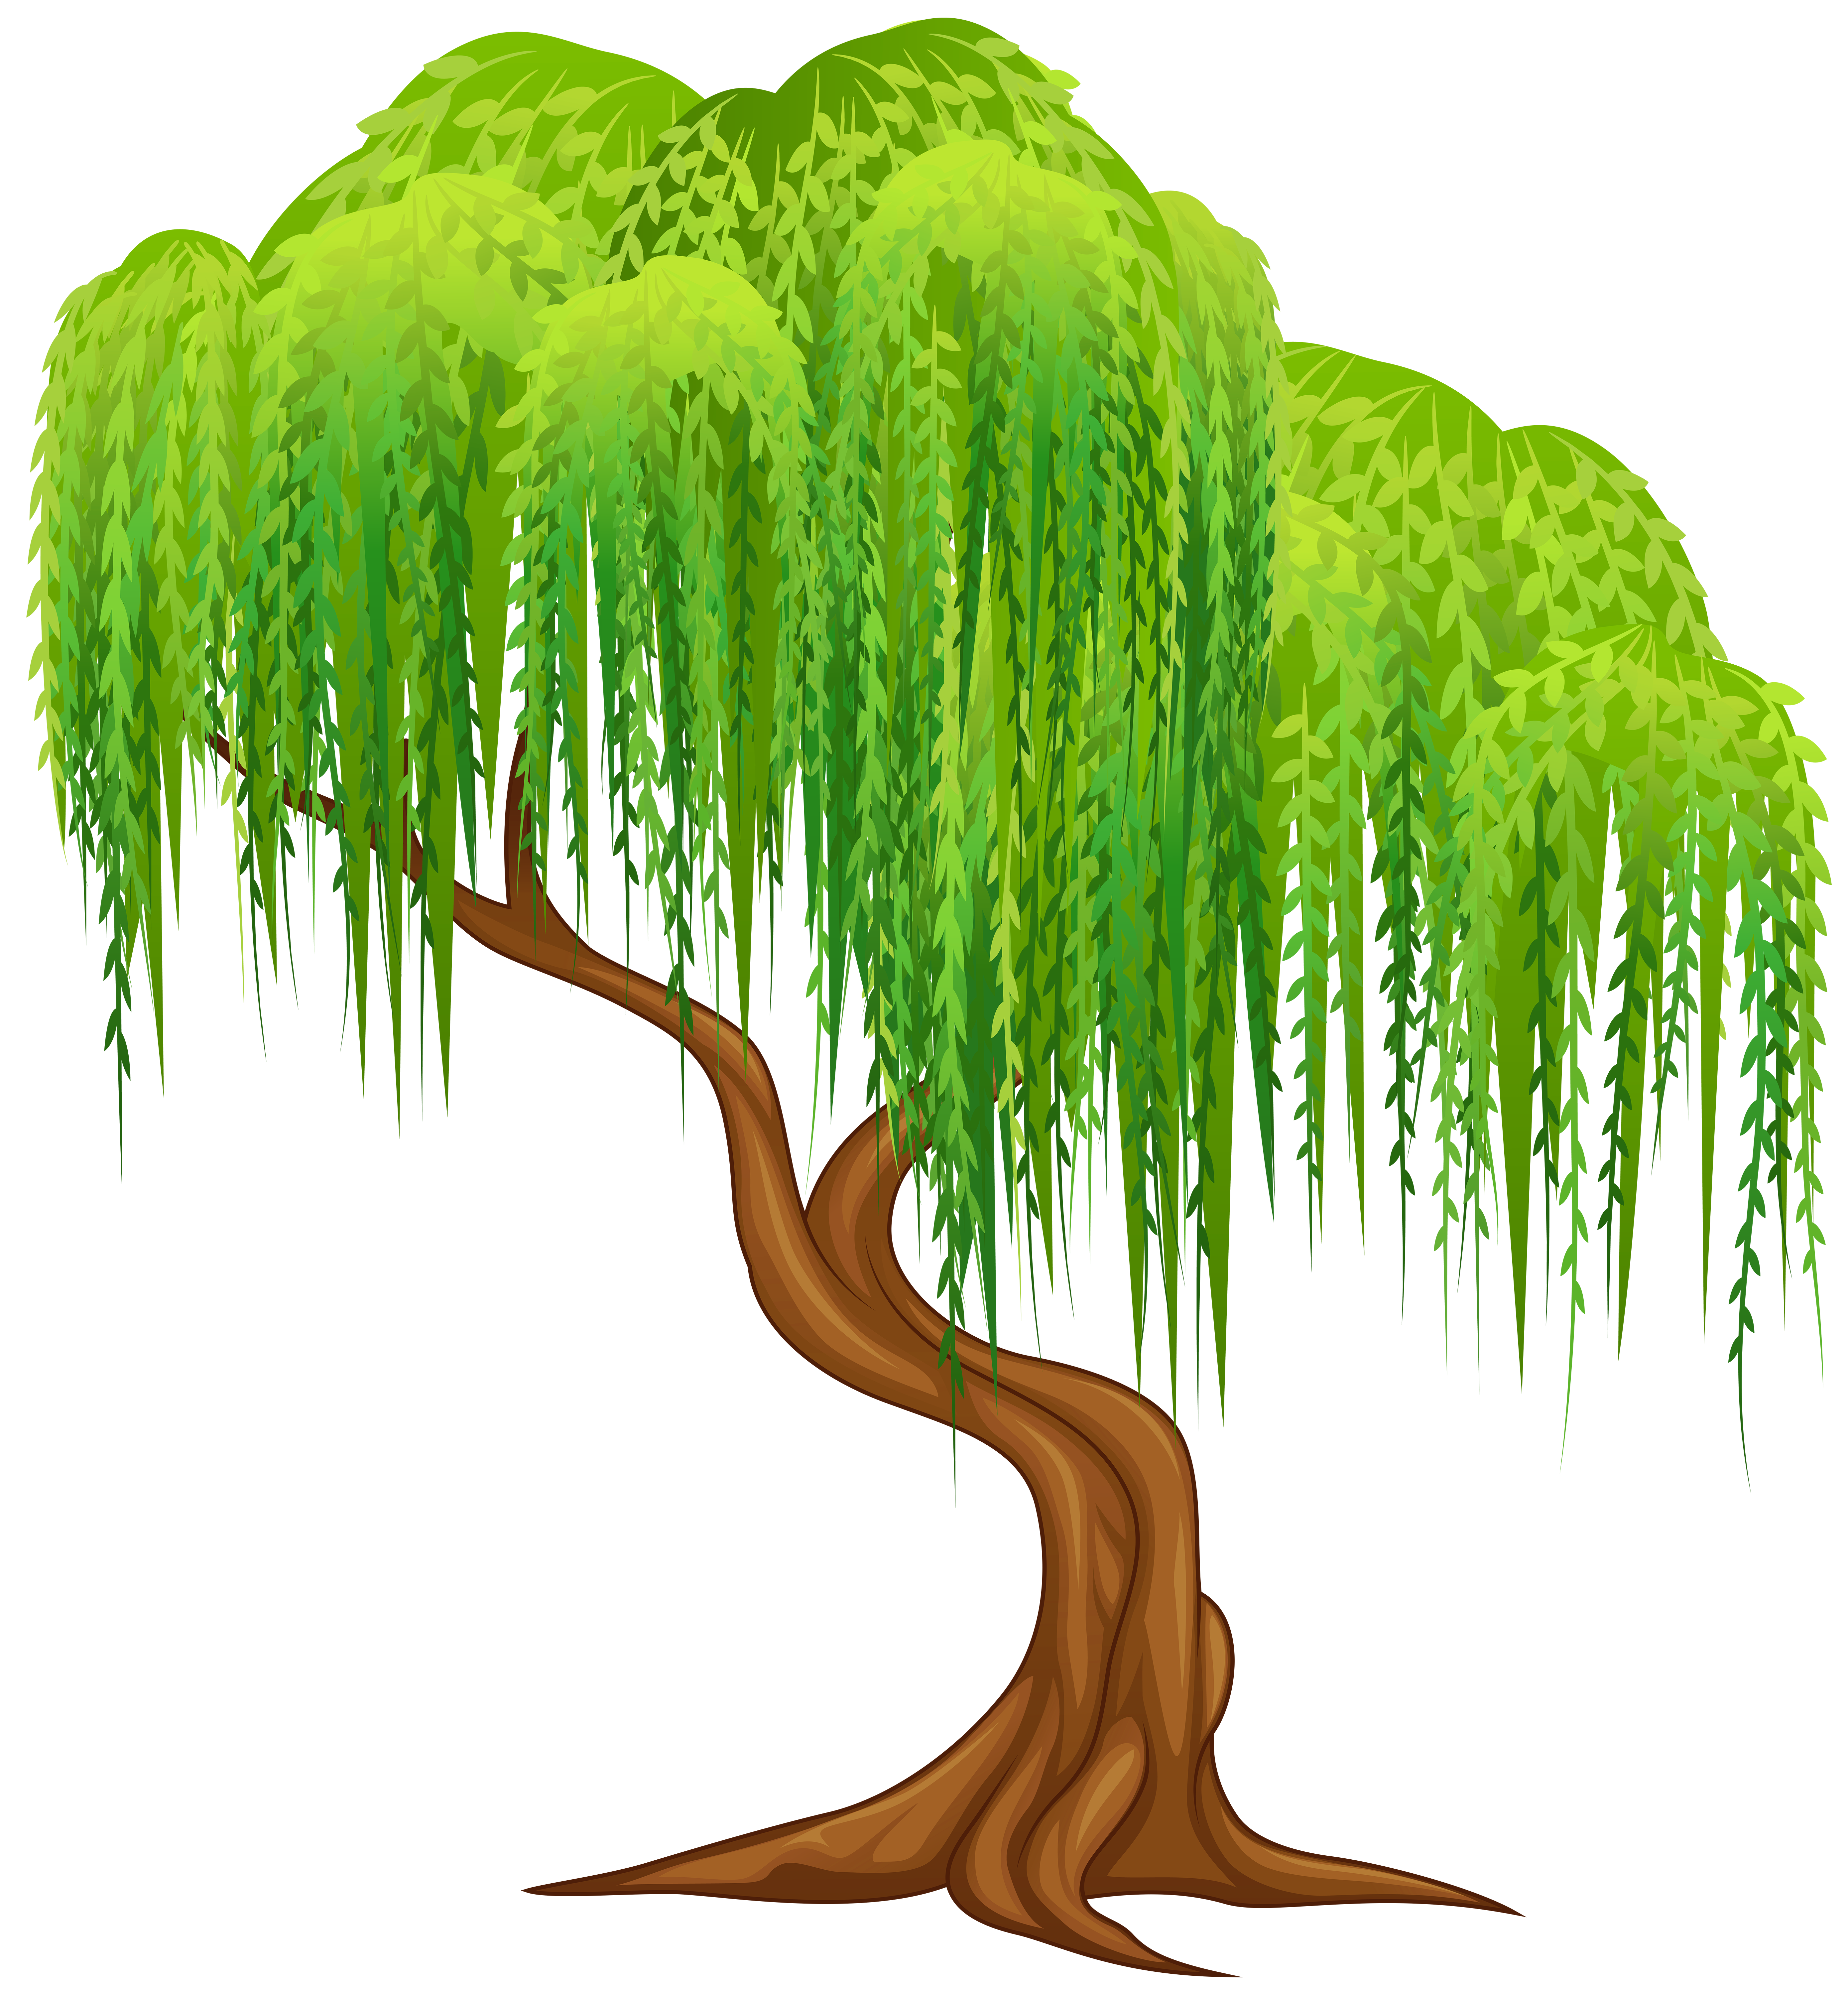 5559x6000 Weeping Willow Tree Png Stock